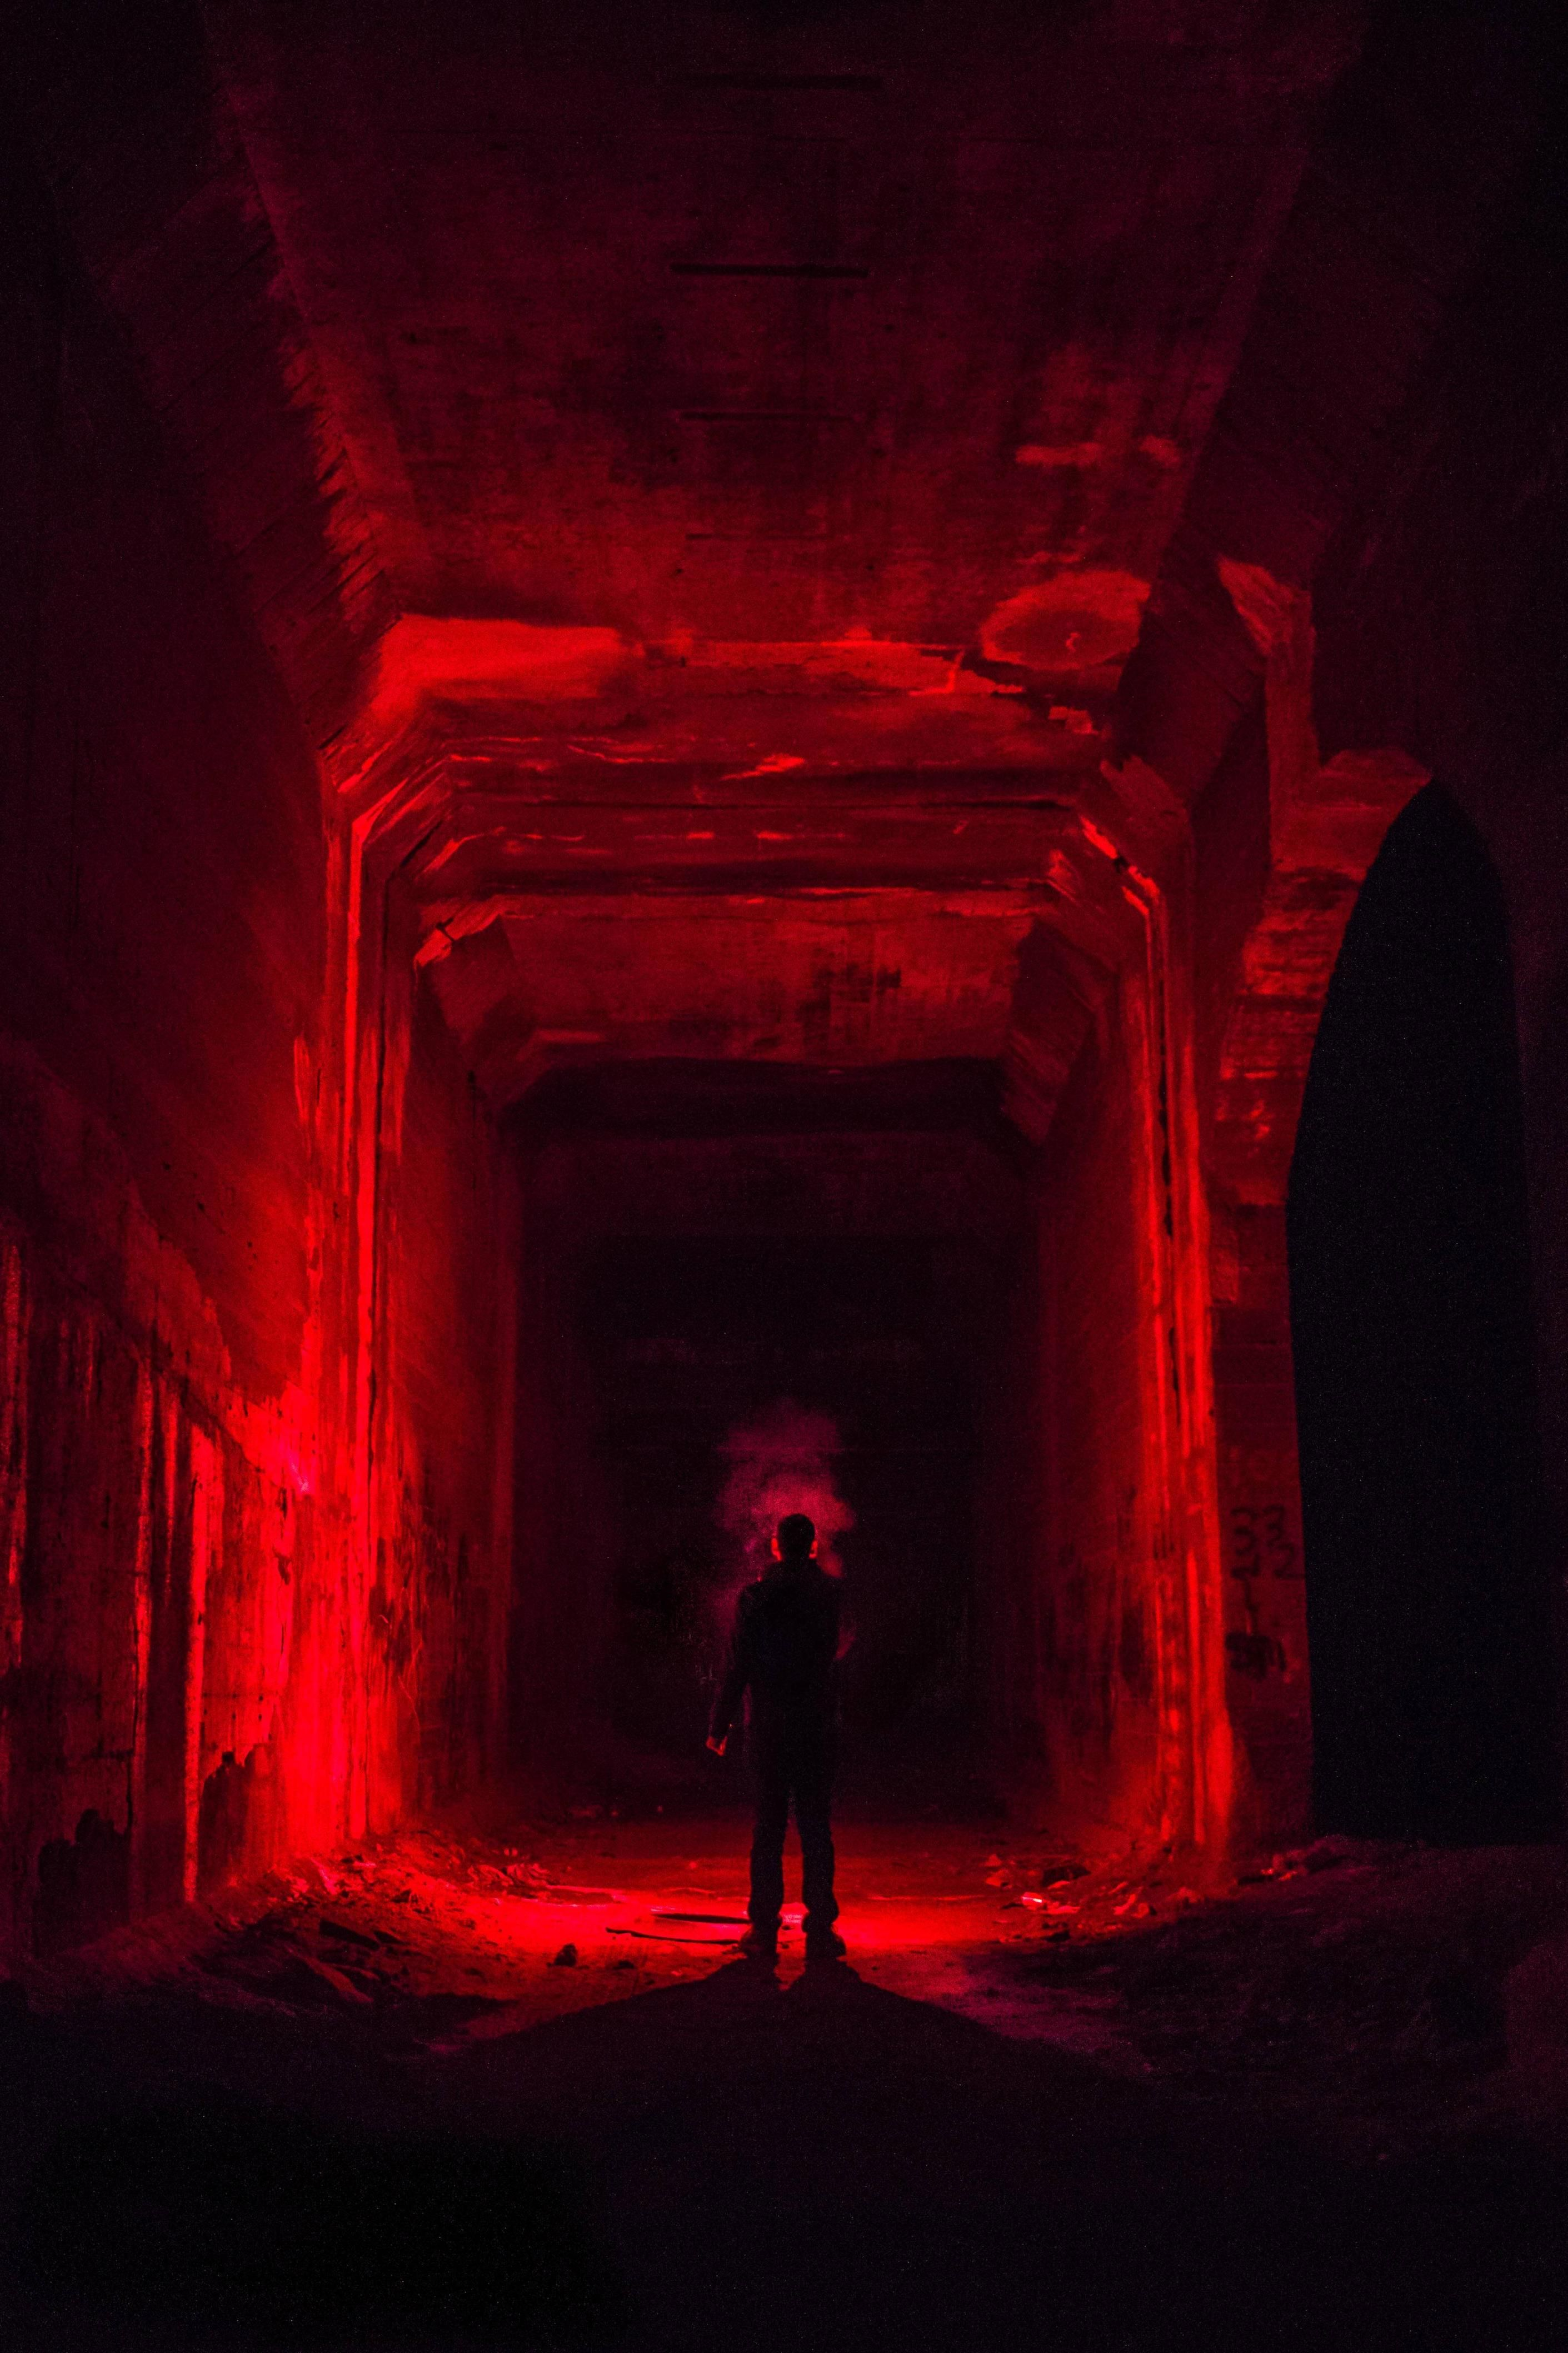 Pin by Eric on Abandoned | Red aesthetic, Red rooms, Red